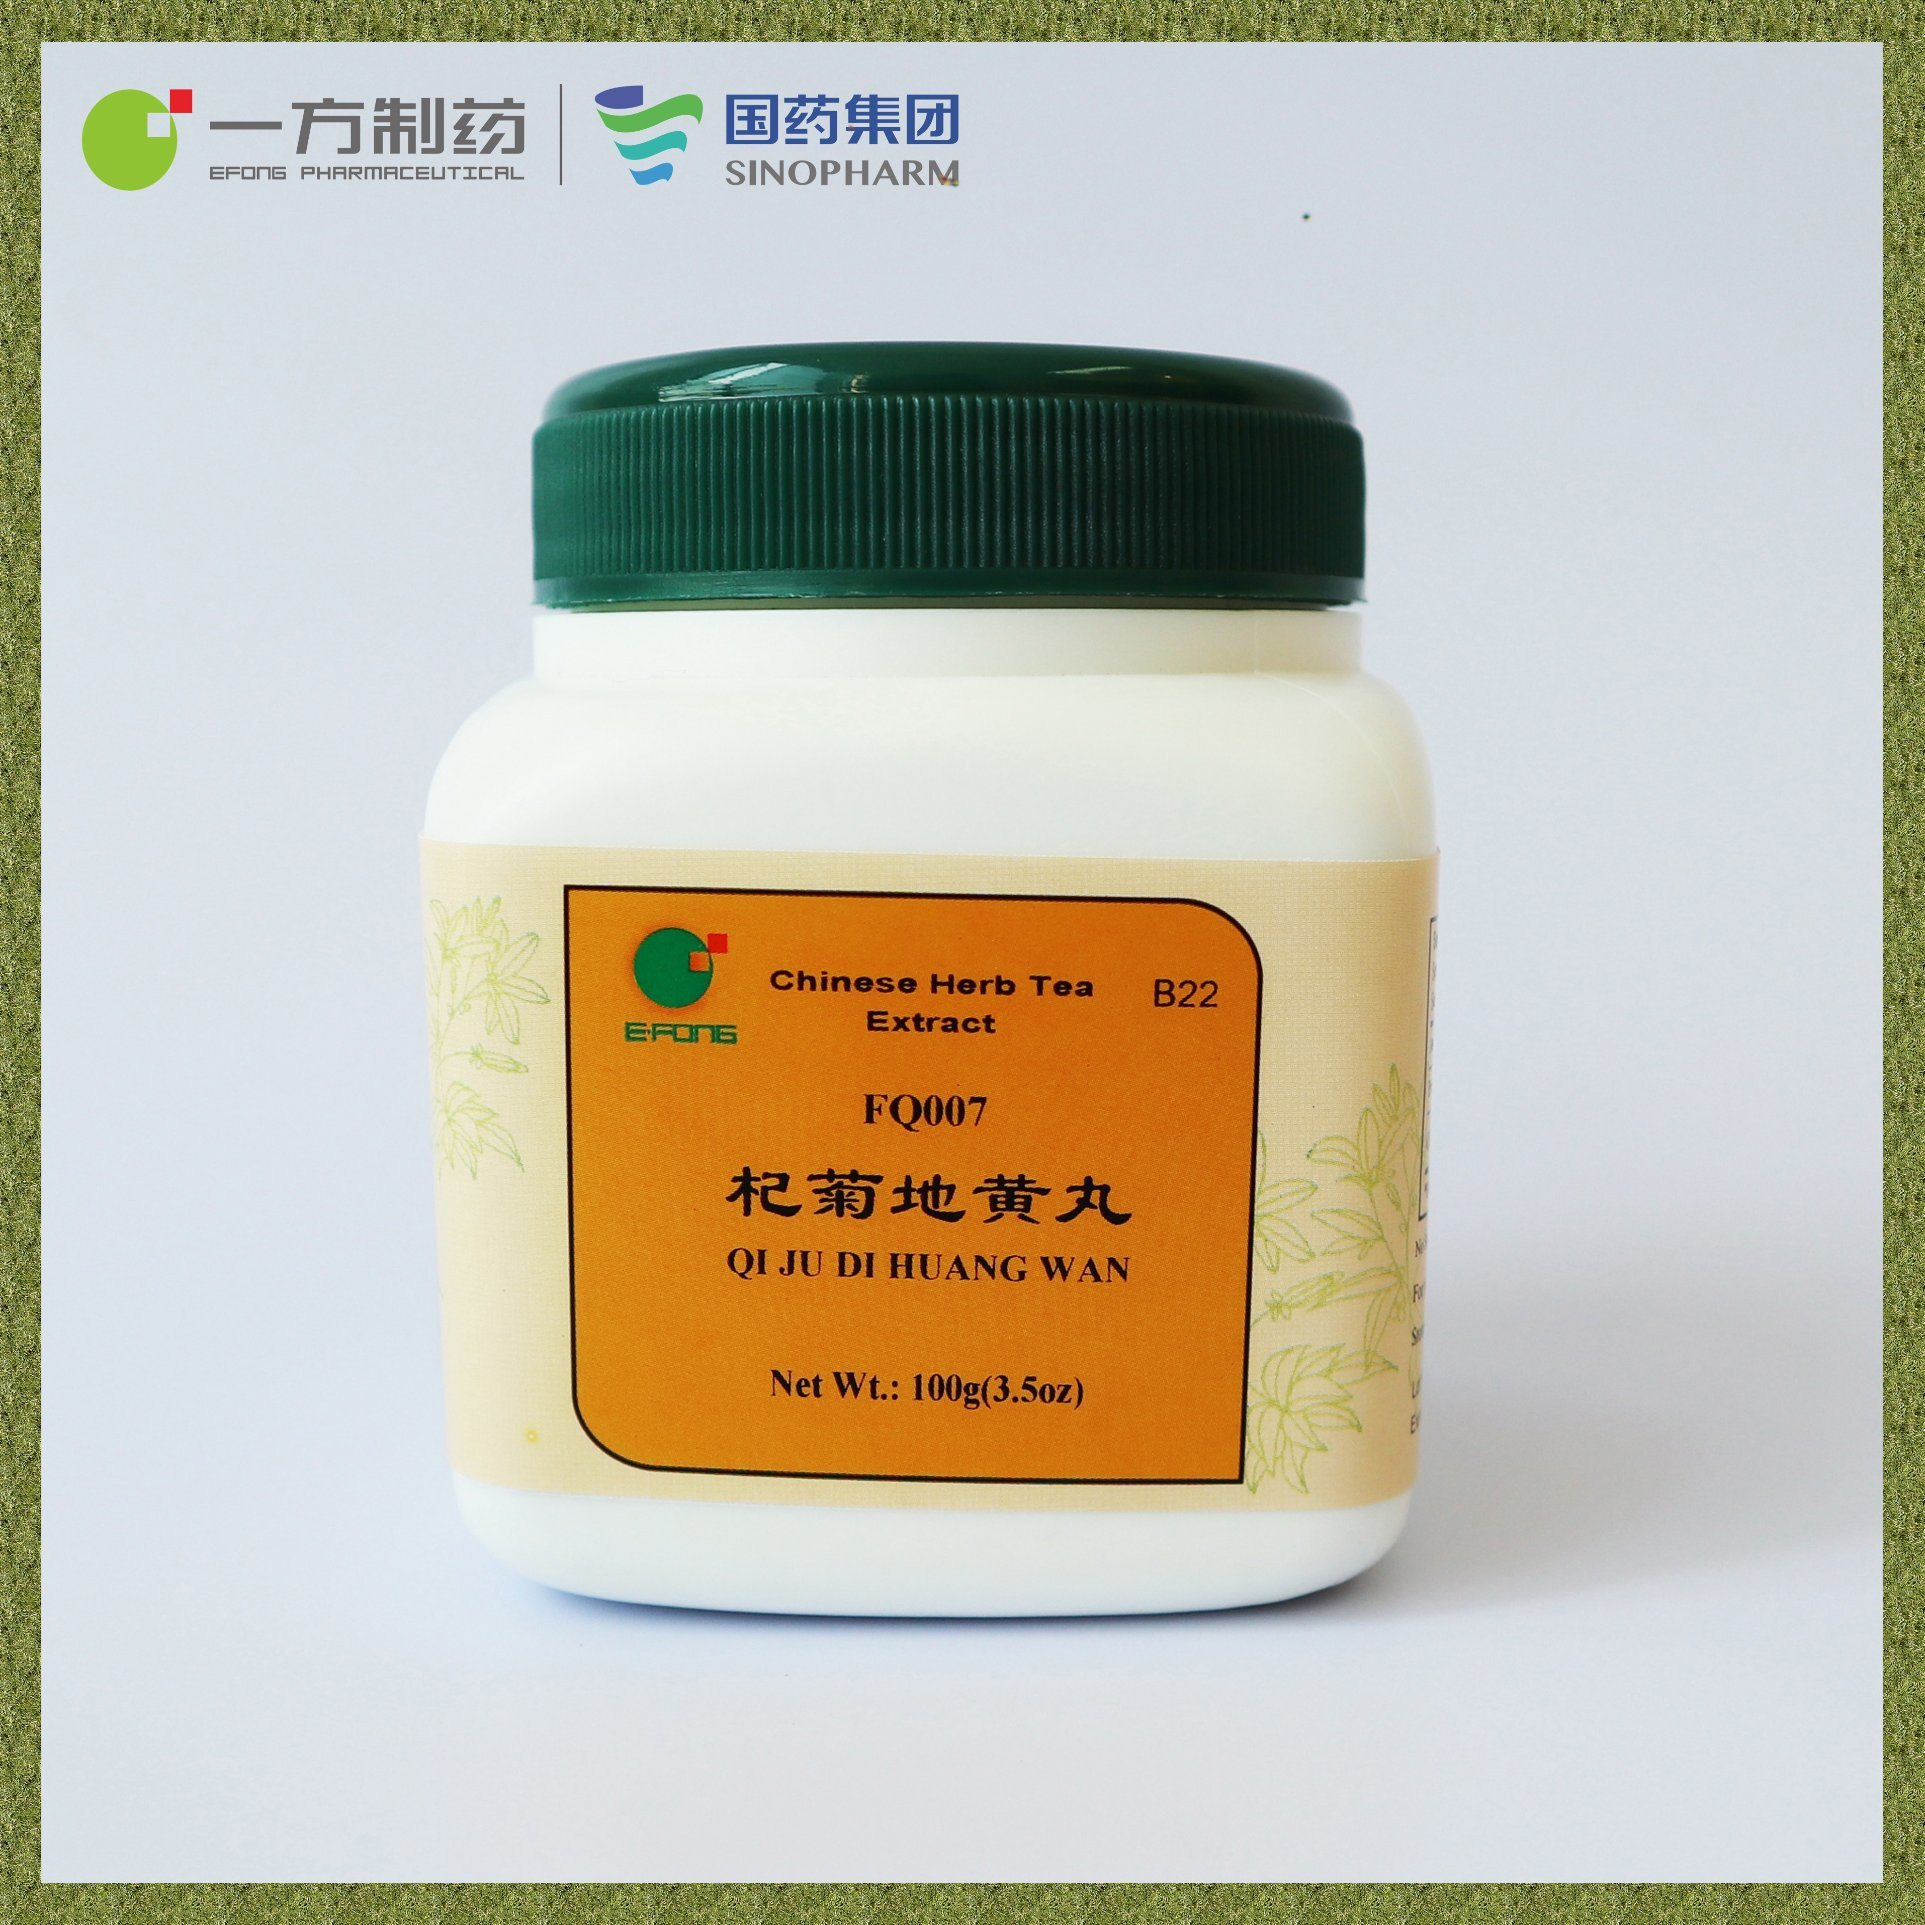 [Hot Item] Qi Ju Di Huang Wan (Chinese Herb Tea Extract) Could Nourish  Kidney and Supplement Liver